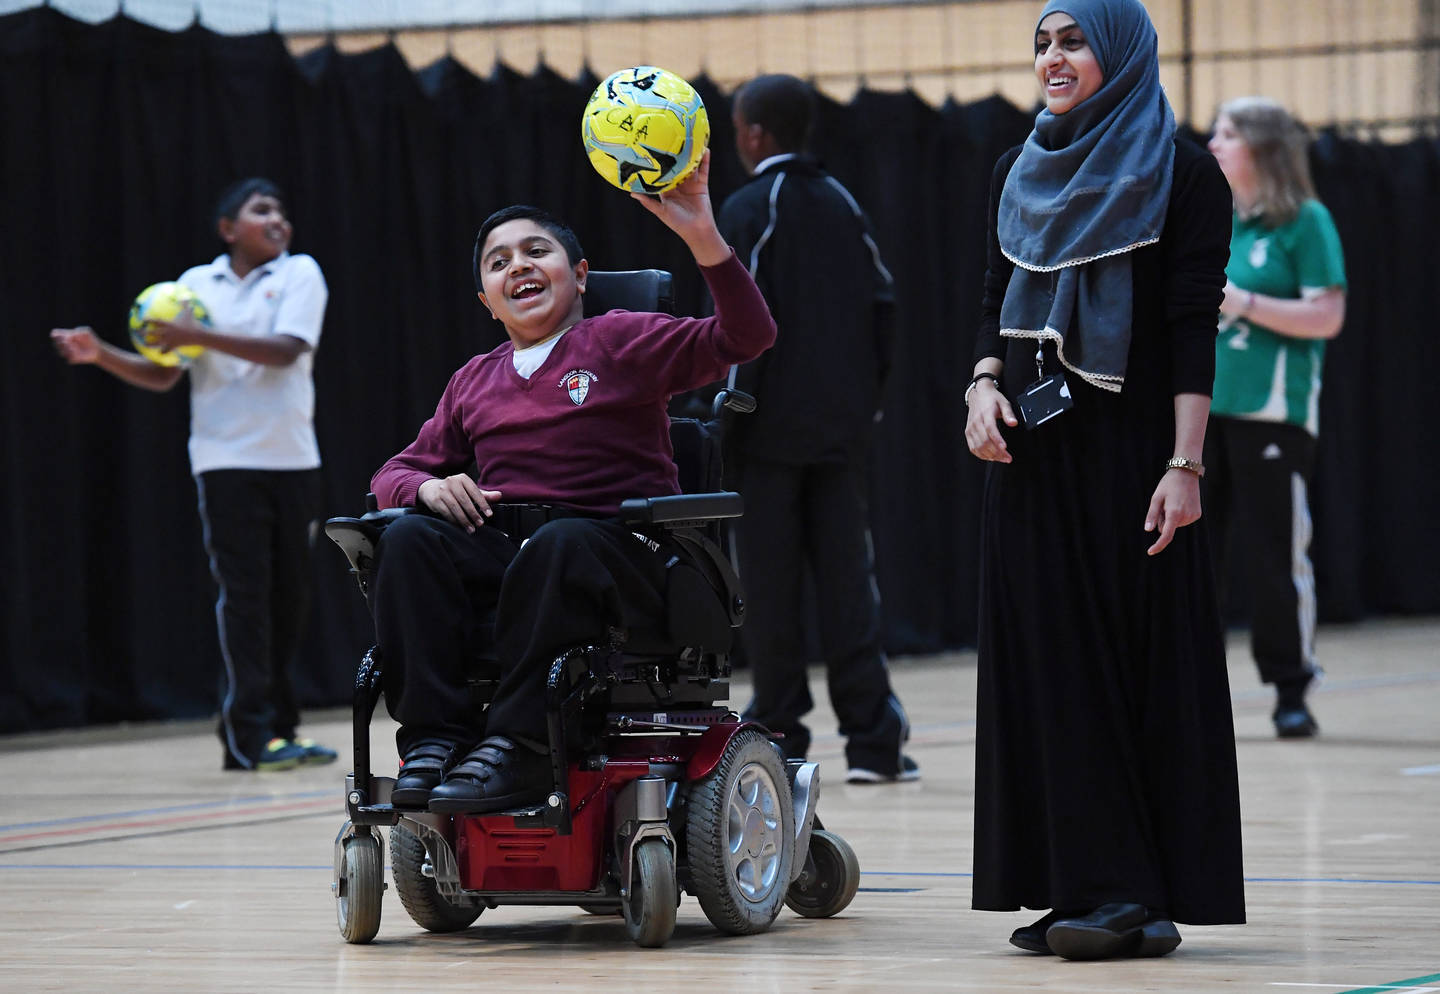 Boy in powerchair with football in hand laughing with girl stood next to him smiling.